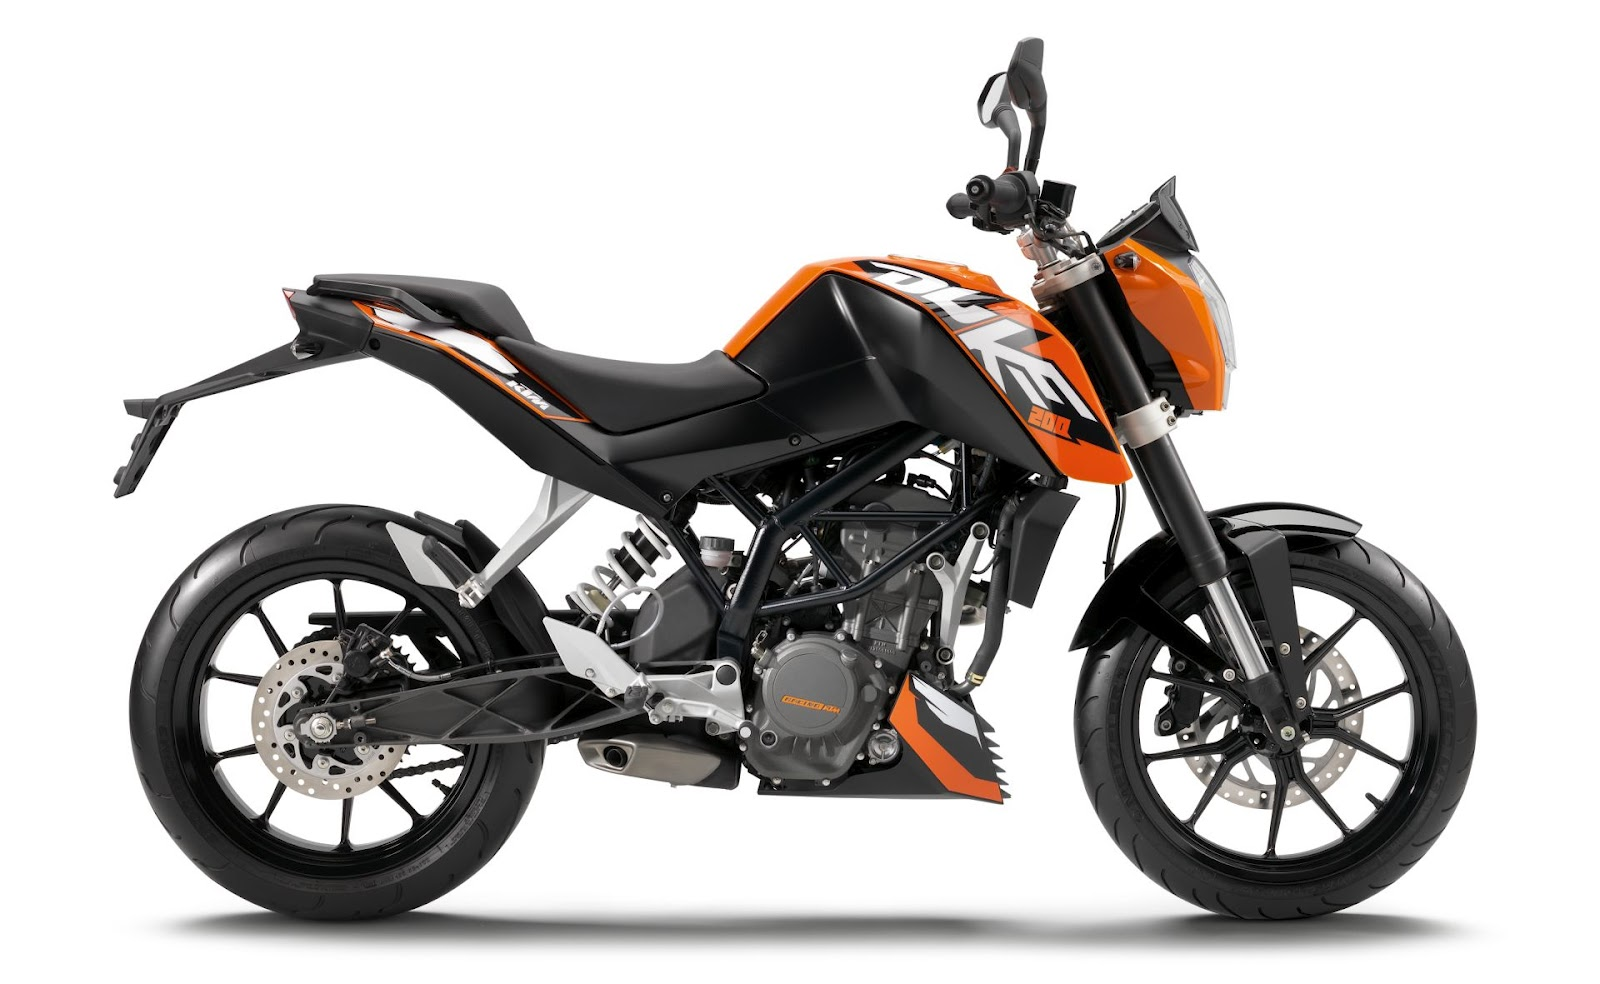 ktm-duke-200-export-version